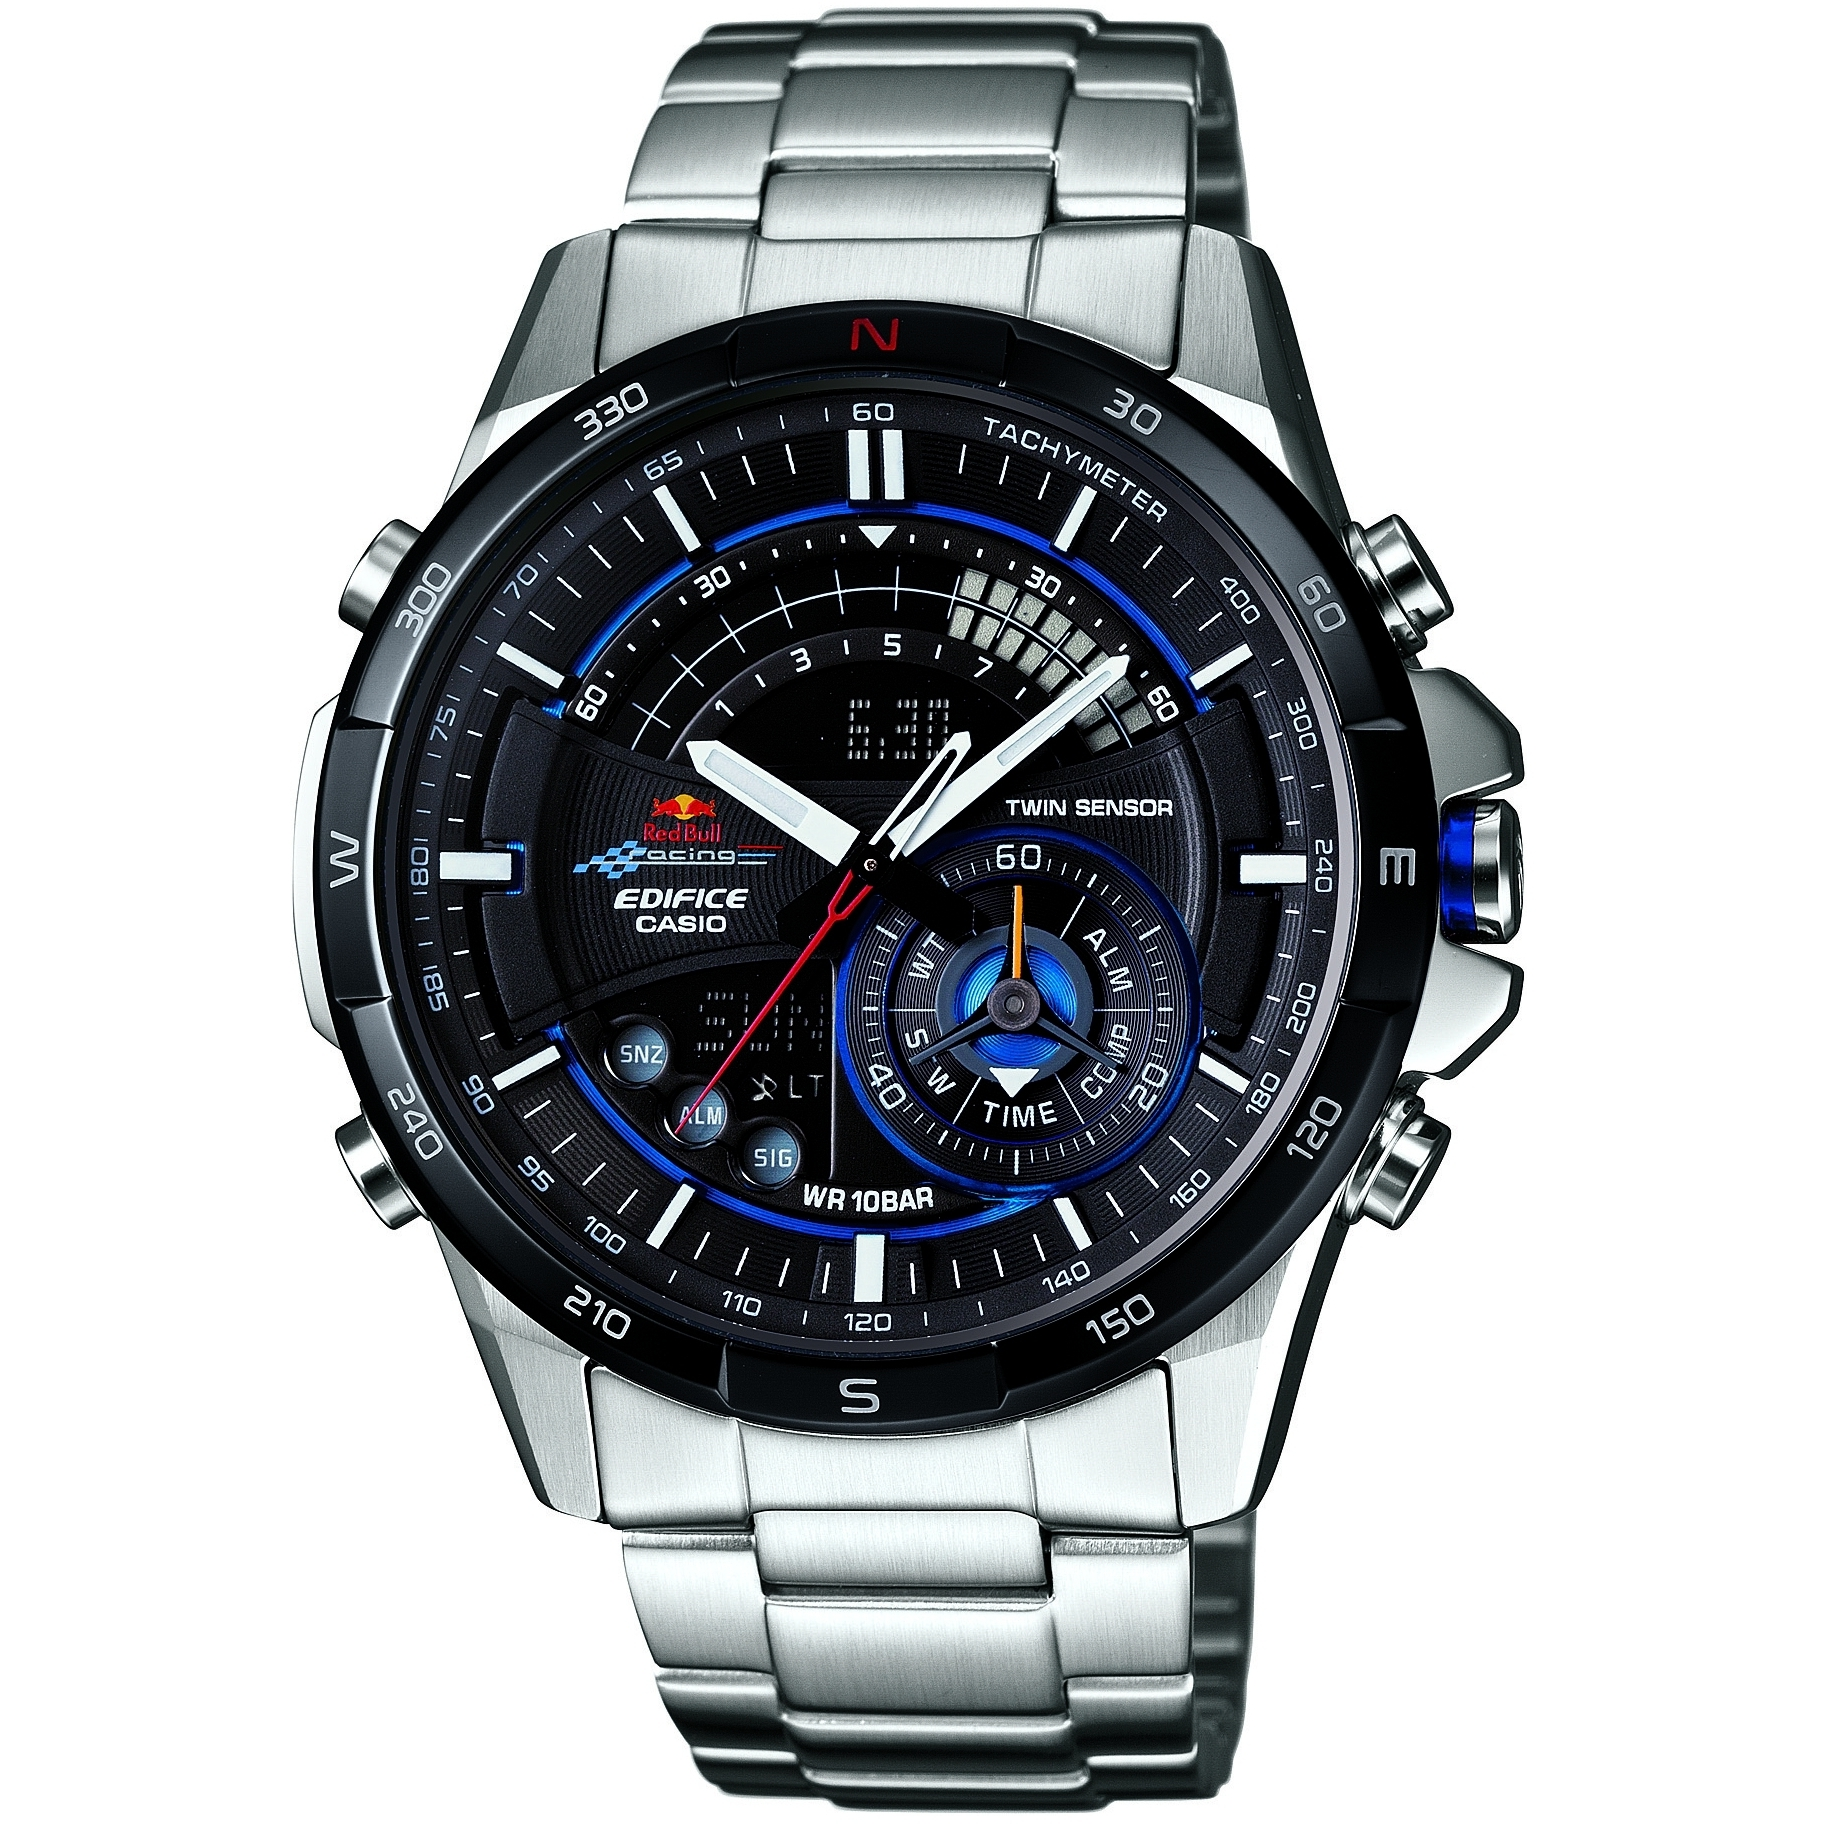 Gents Casio Edifice Red Bull Racing Limited Edition Alarm Chronograph Watch  (ERA-200RB-1AER)  671a3b429